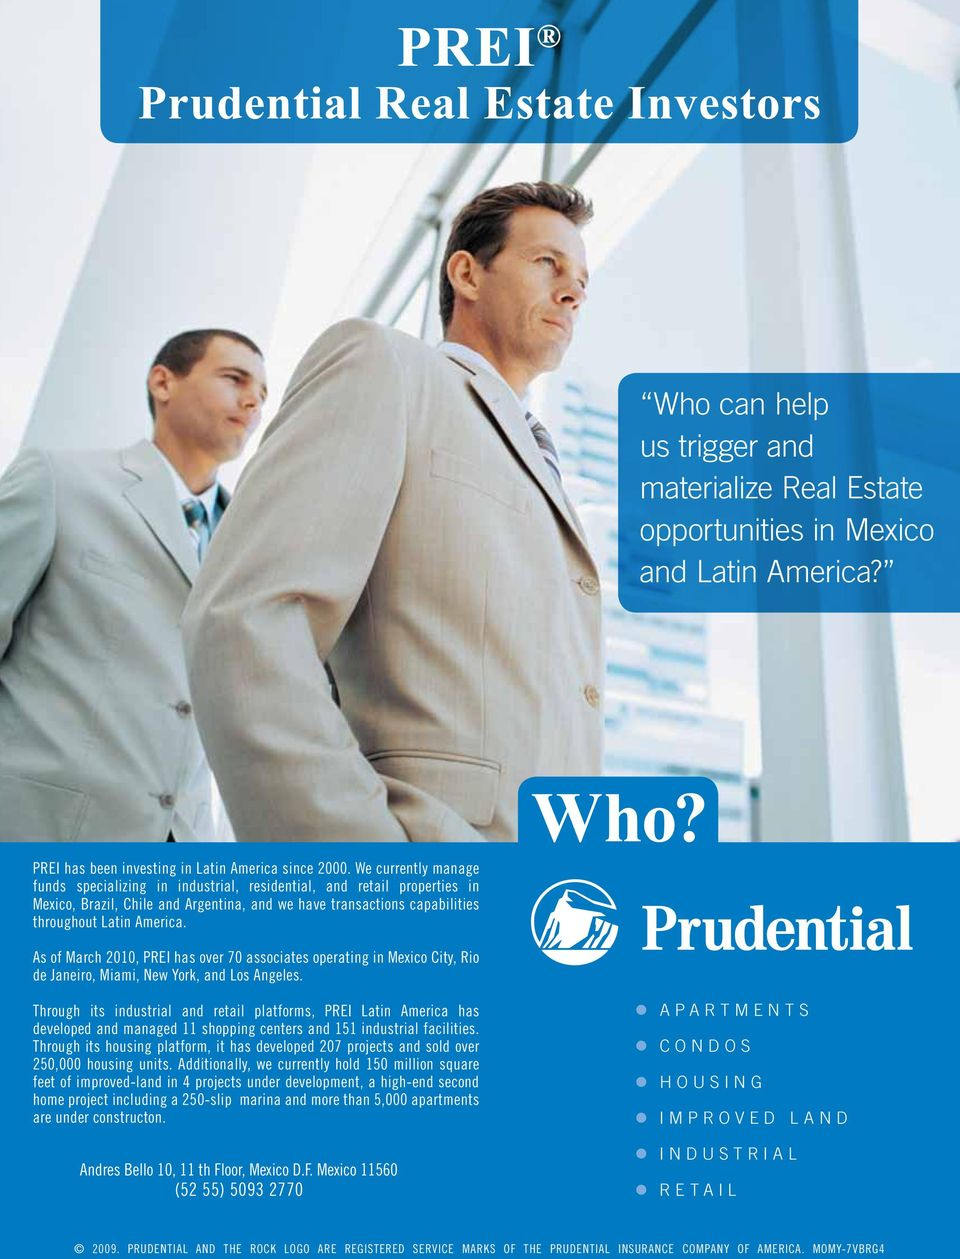 As of March 2010, PREI has over 70 associates operating in Mexico City, Rio de Janeiro, Miami, New York, and Los Angeles.